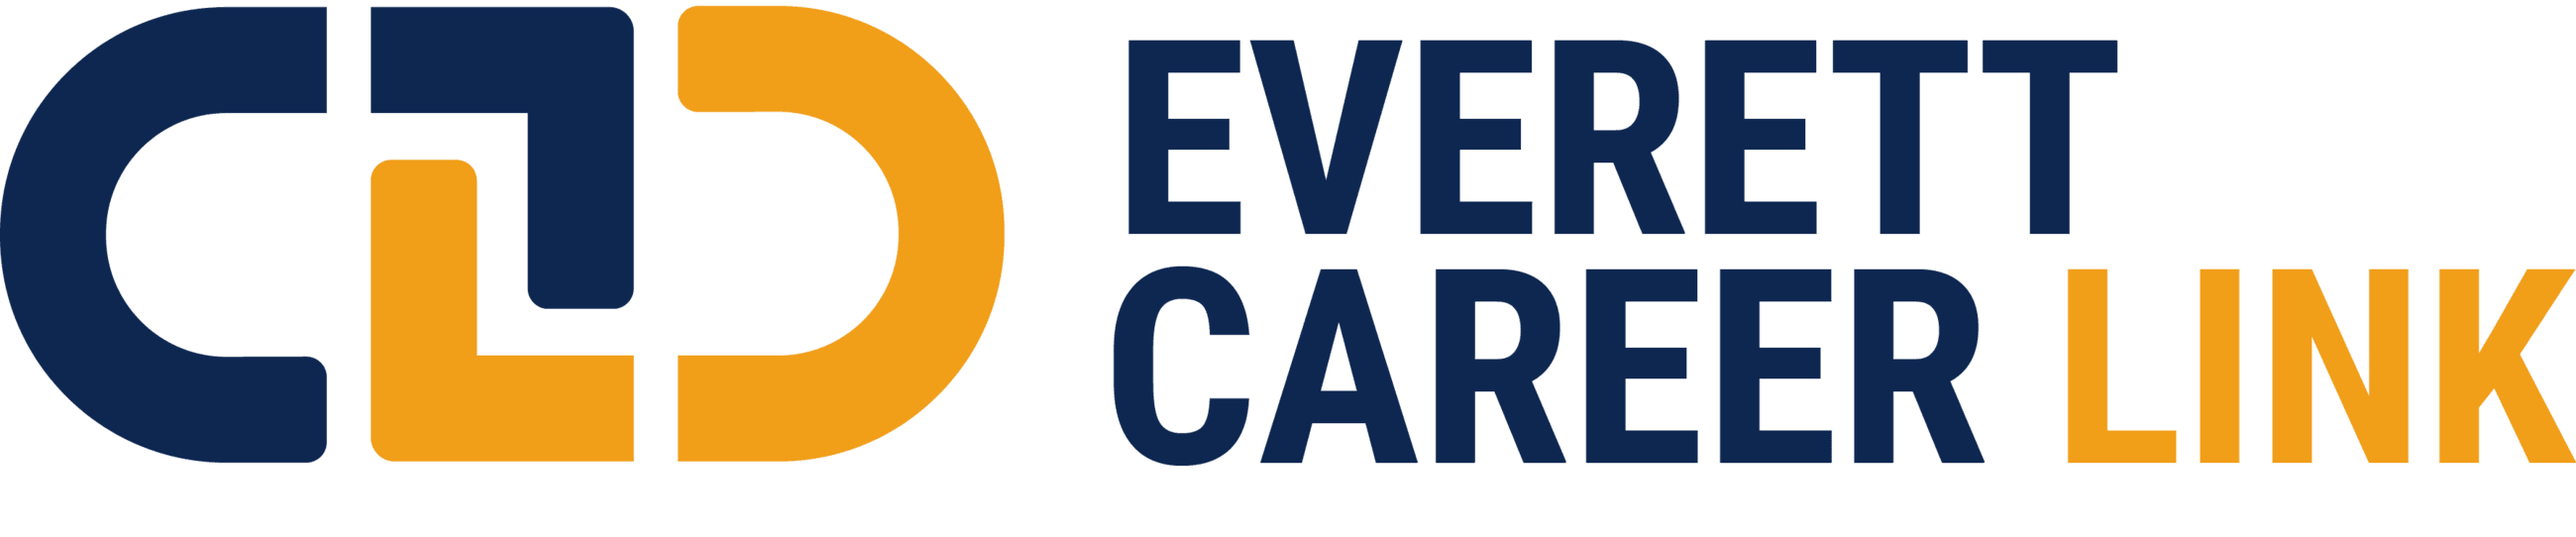 Everett Career Link